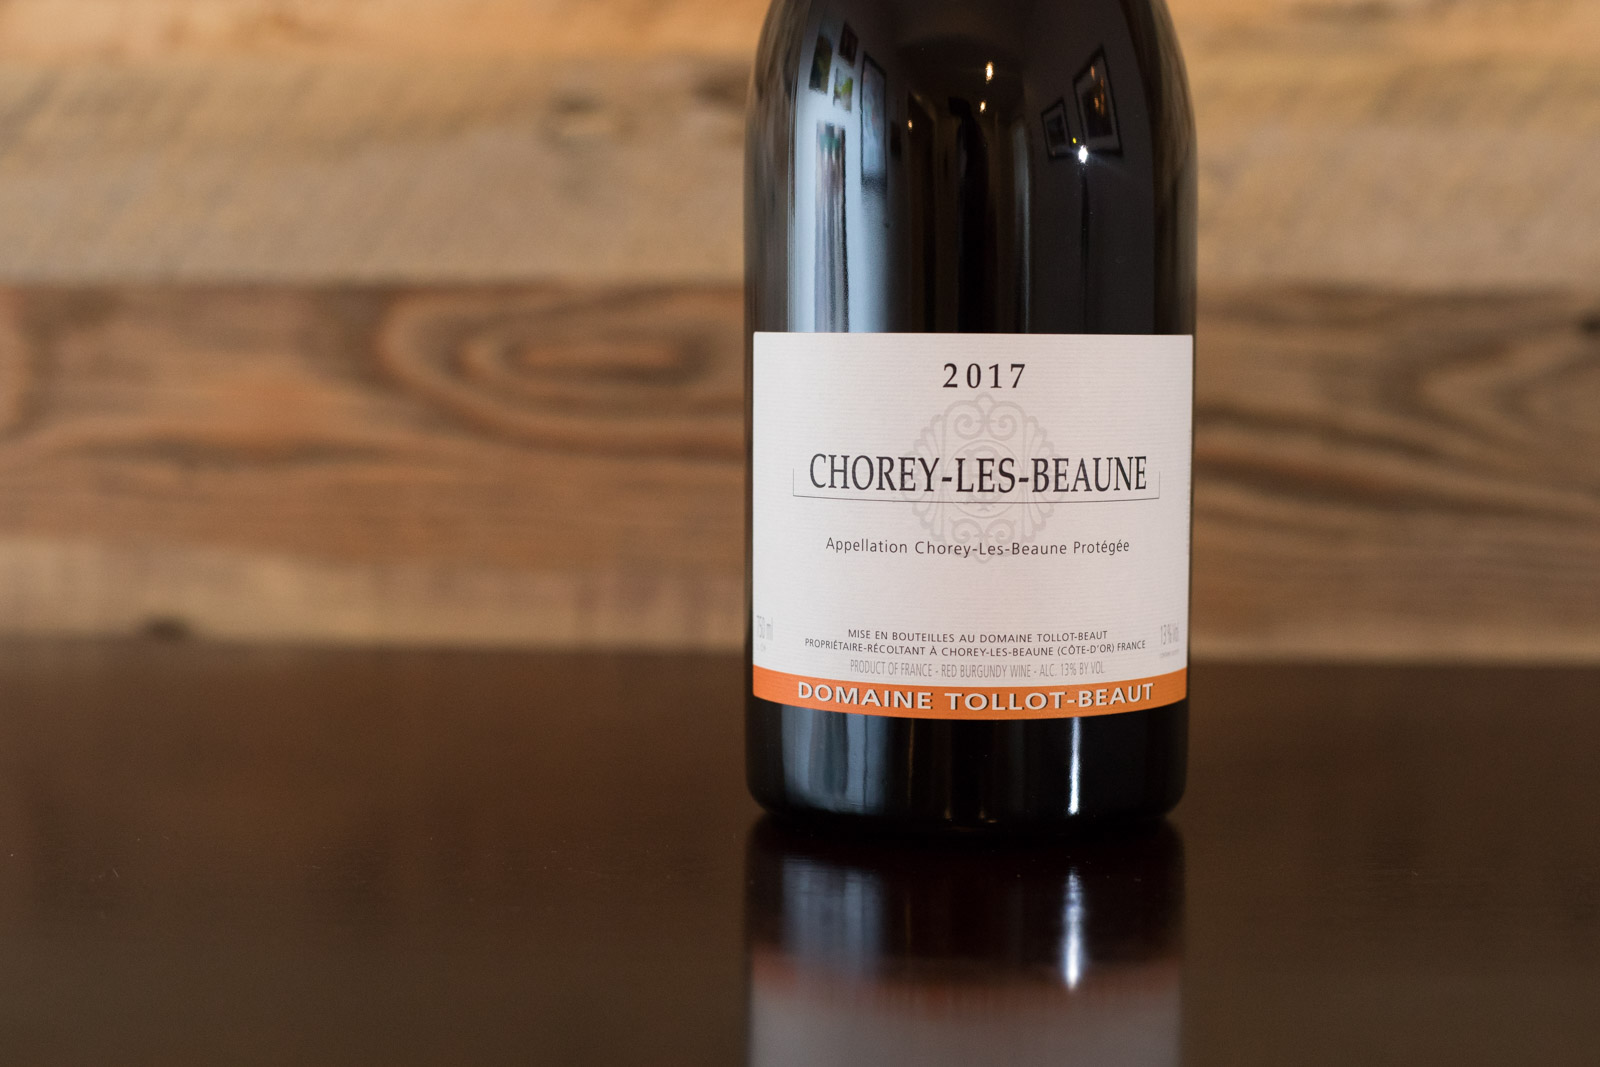 2017 Domaine Tollot-Beaut Chorey-les-Beaune ©Kevin Day/Opening a Bottle